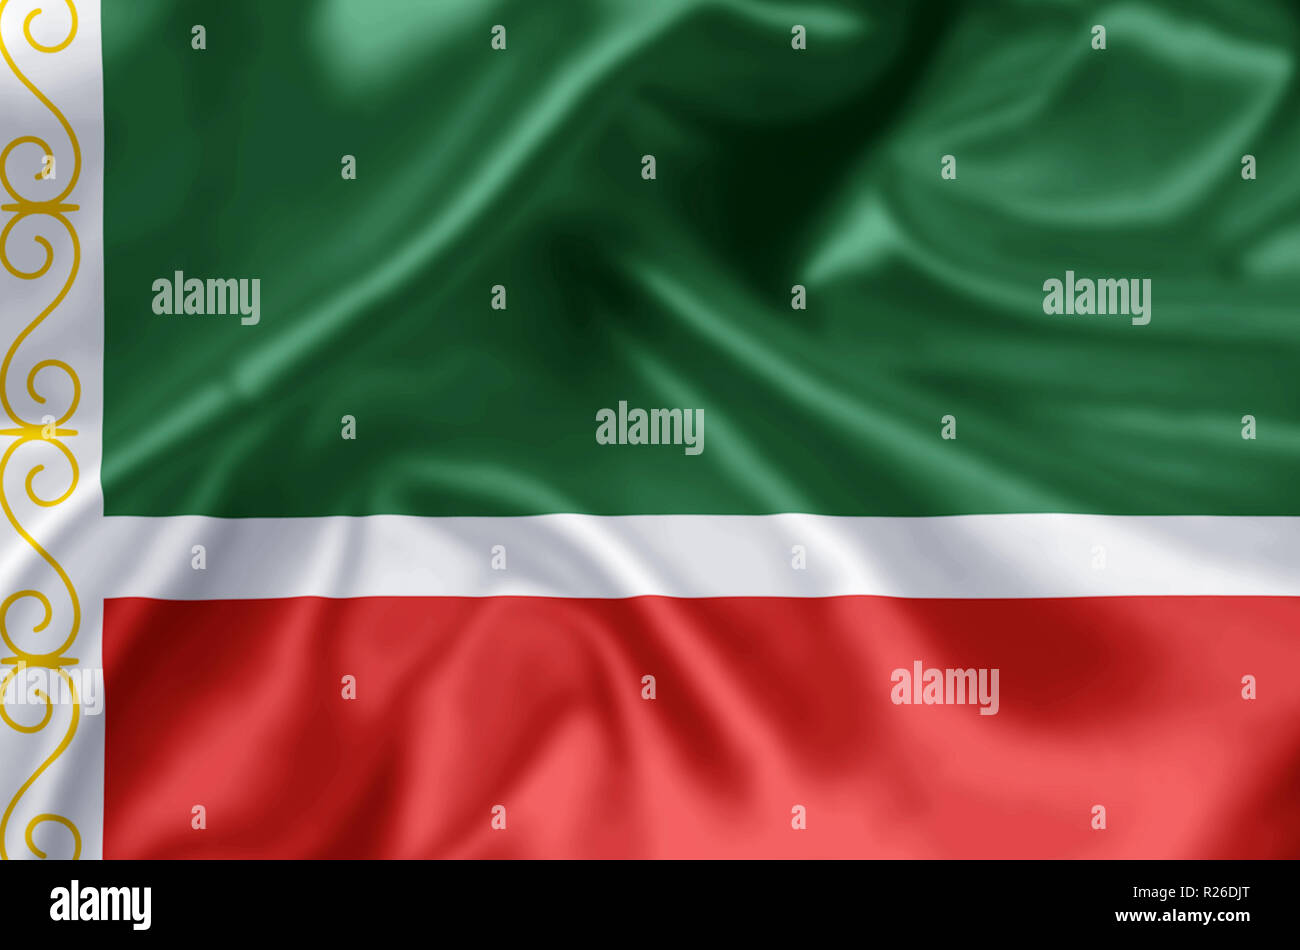 The Chechen Republic waving and closeup flag illustration. Perfect for background or texture purposes. - Stock Image